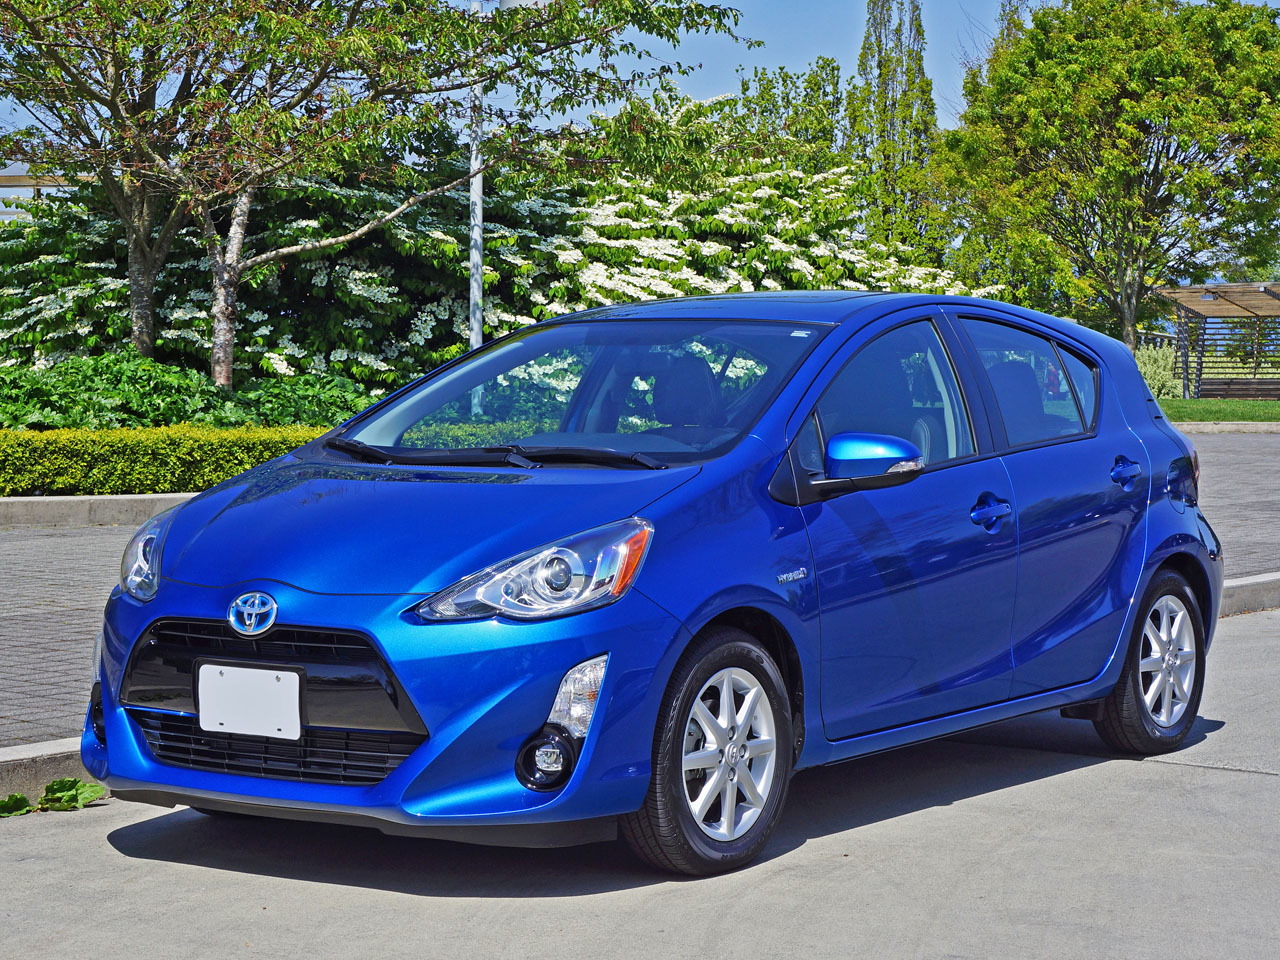 2015 toyota prius c technology road test review. Black Bedroom Furniture Sets. Home Design Ideas